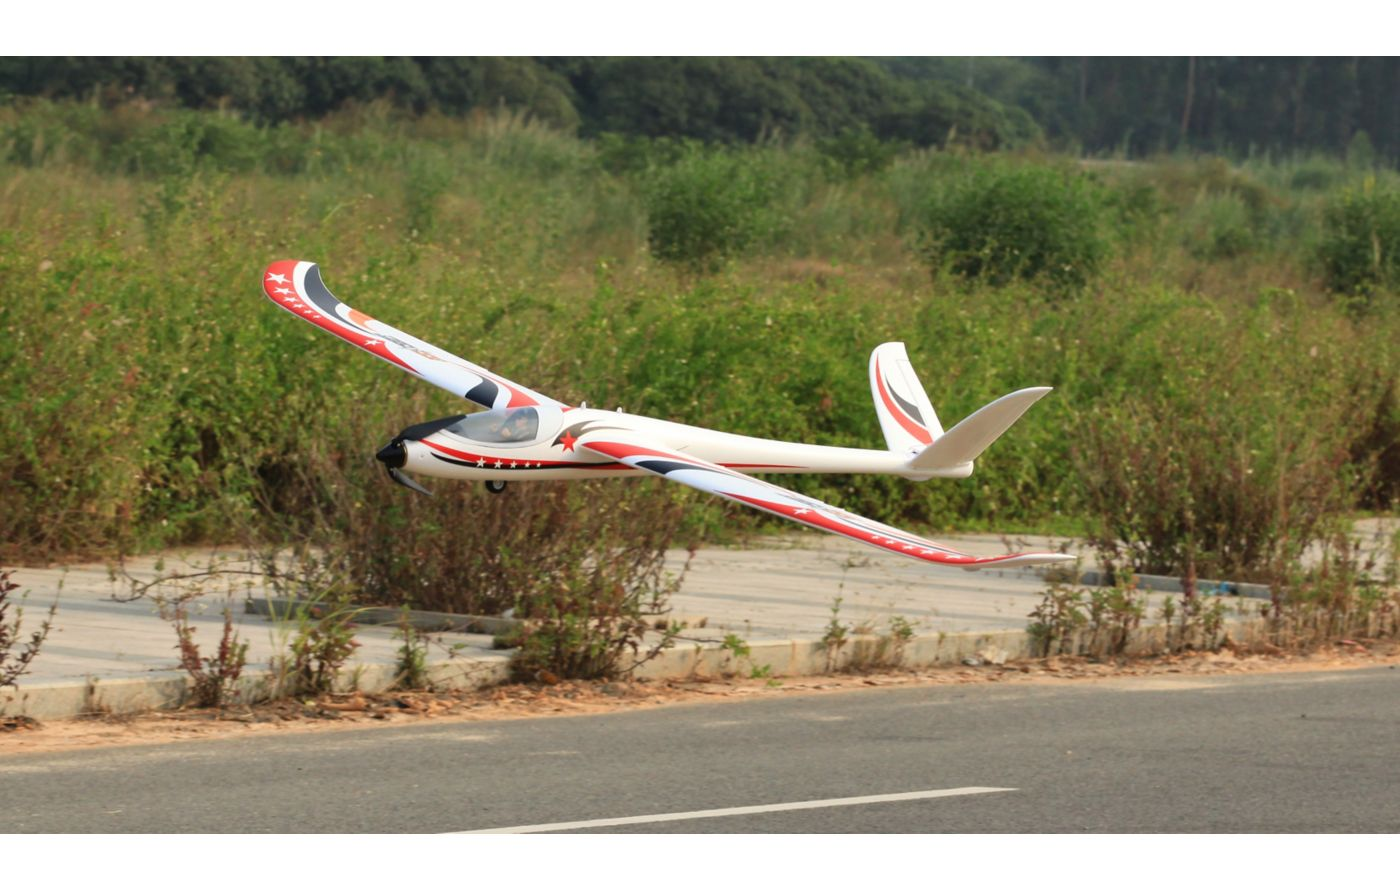 Image for V-Tail Glider 2.2m PNP from Force RC